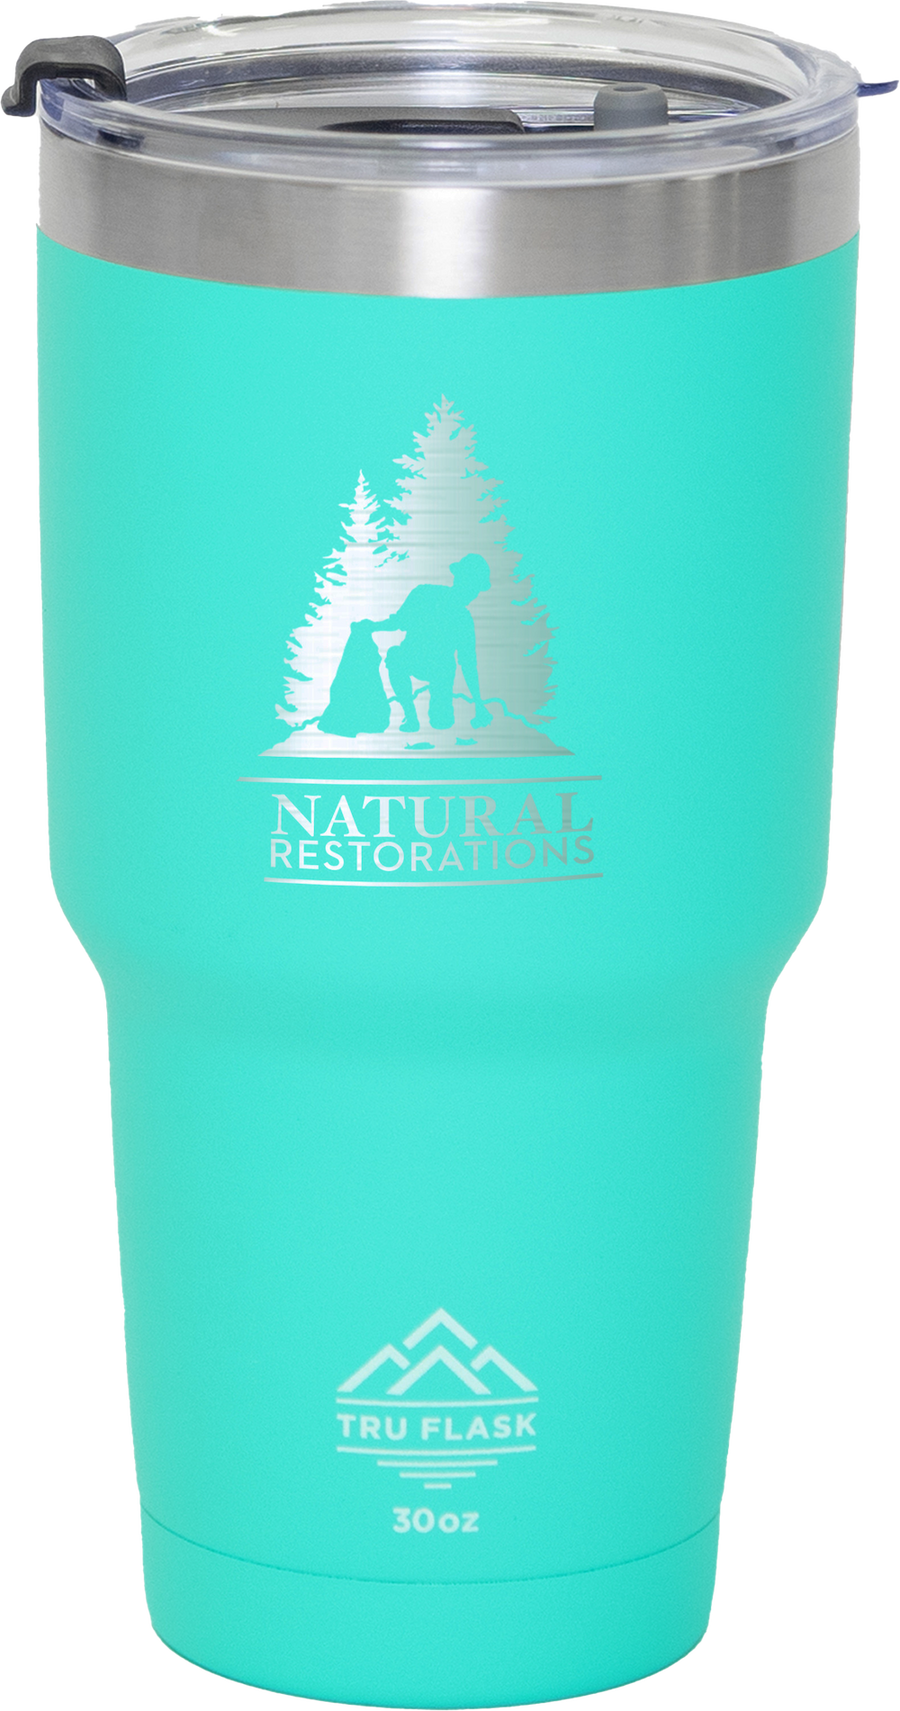 Natural Restorations Tumbler 30oz